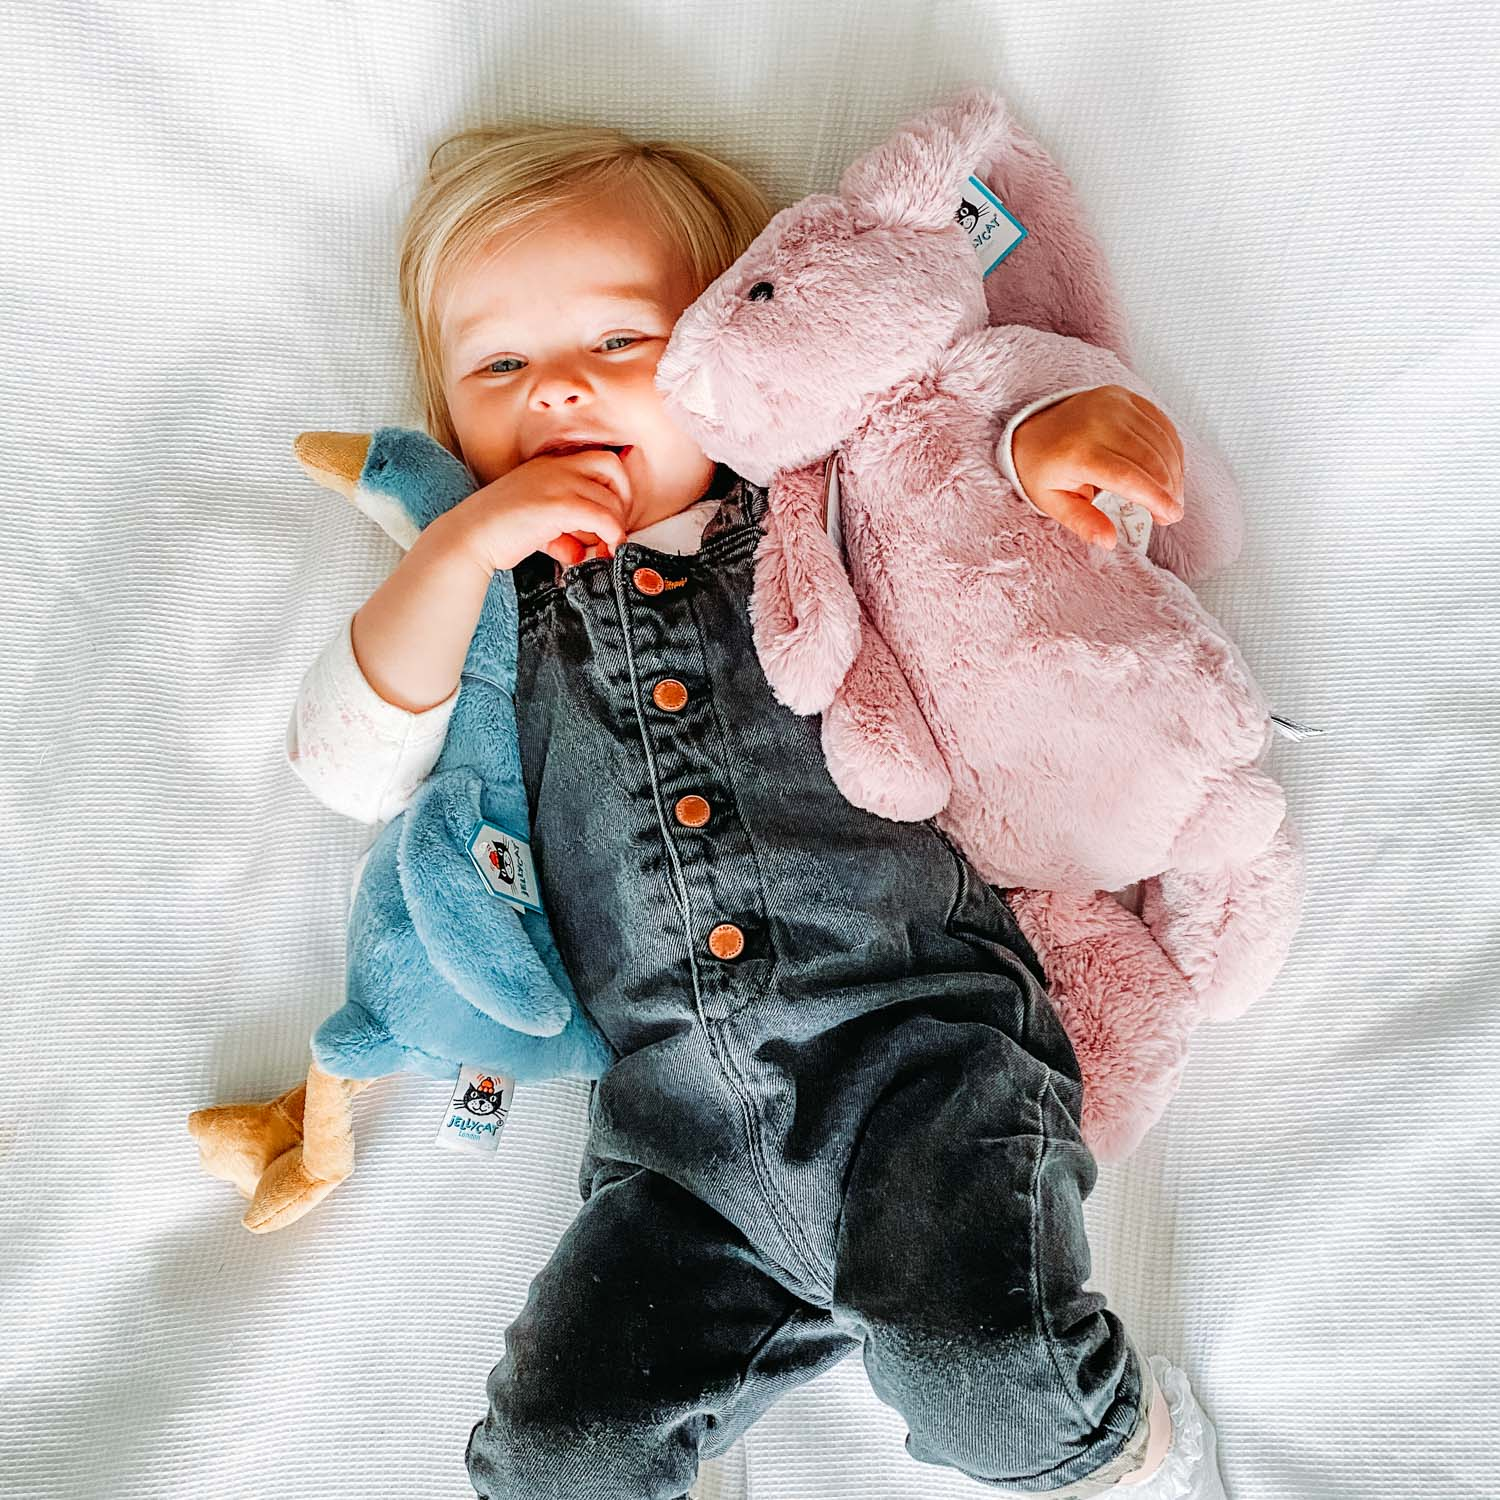 Baby Soft Toy Gifts - Send a Cuddly